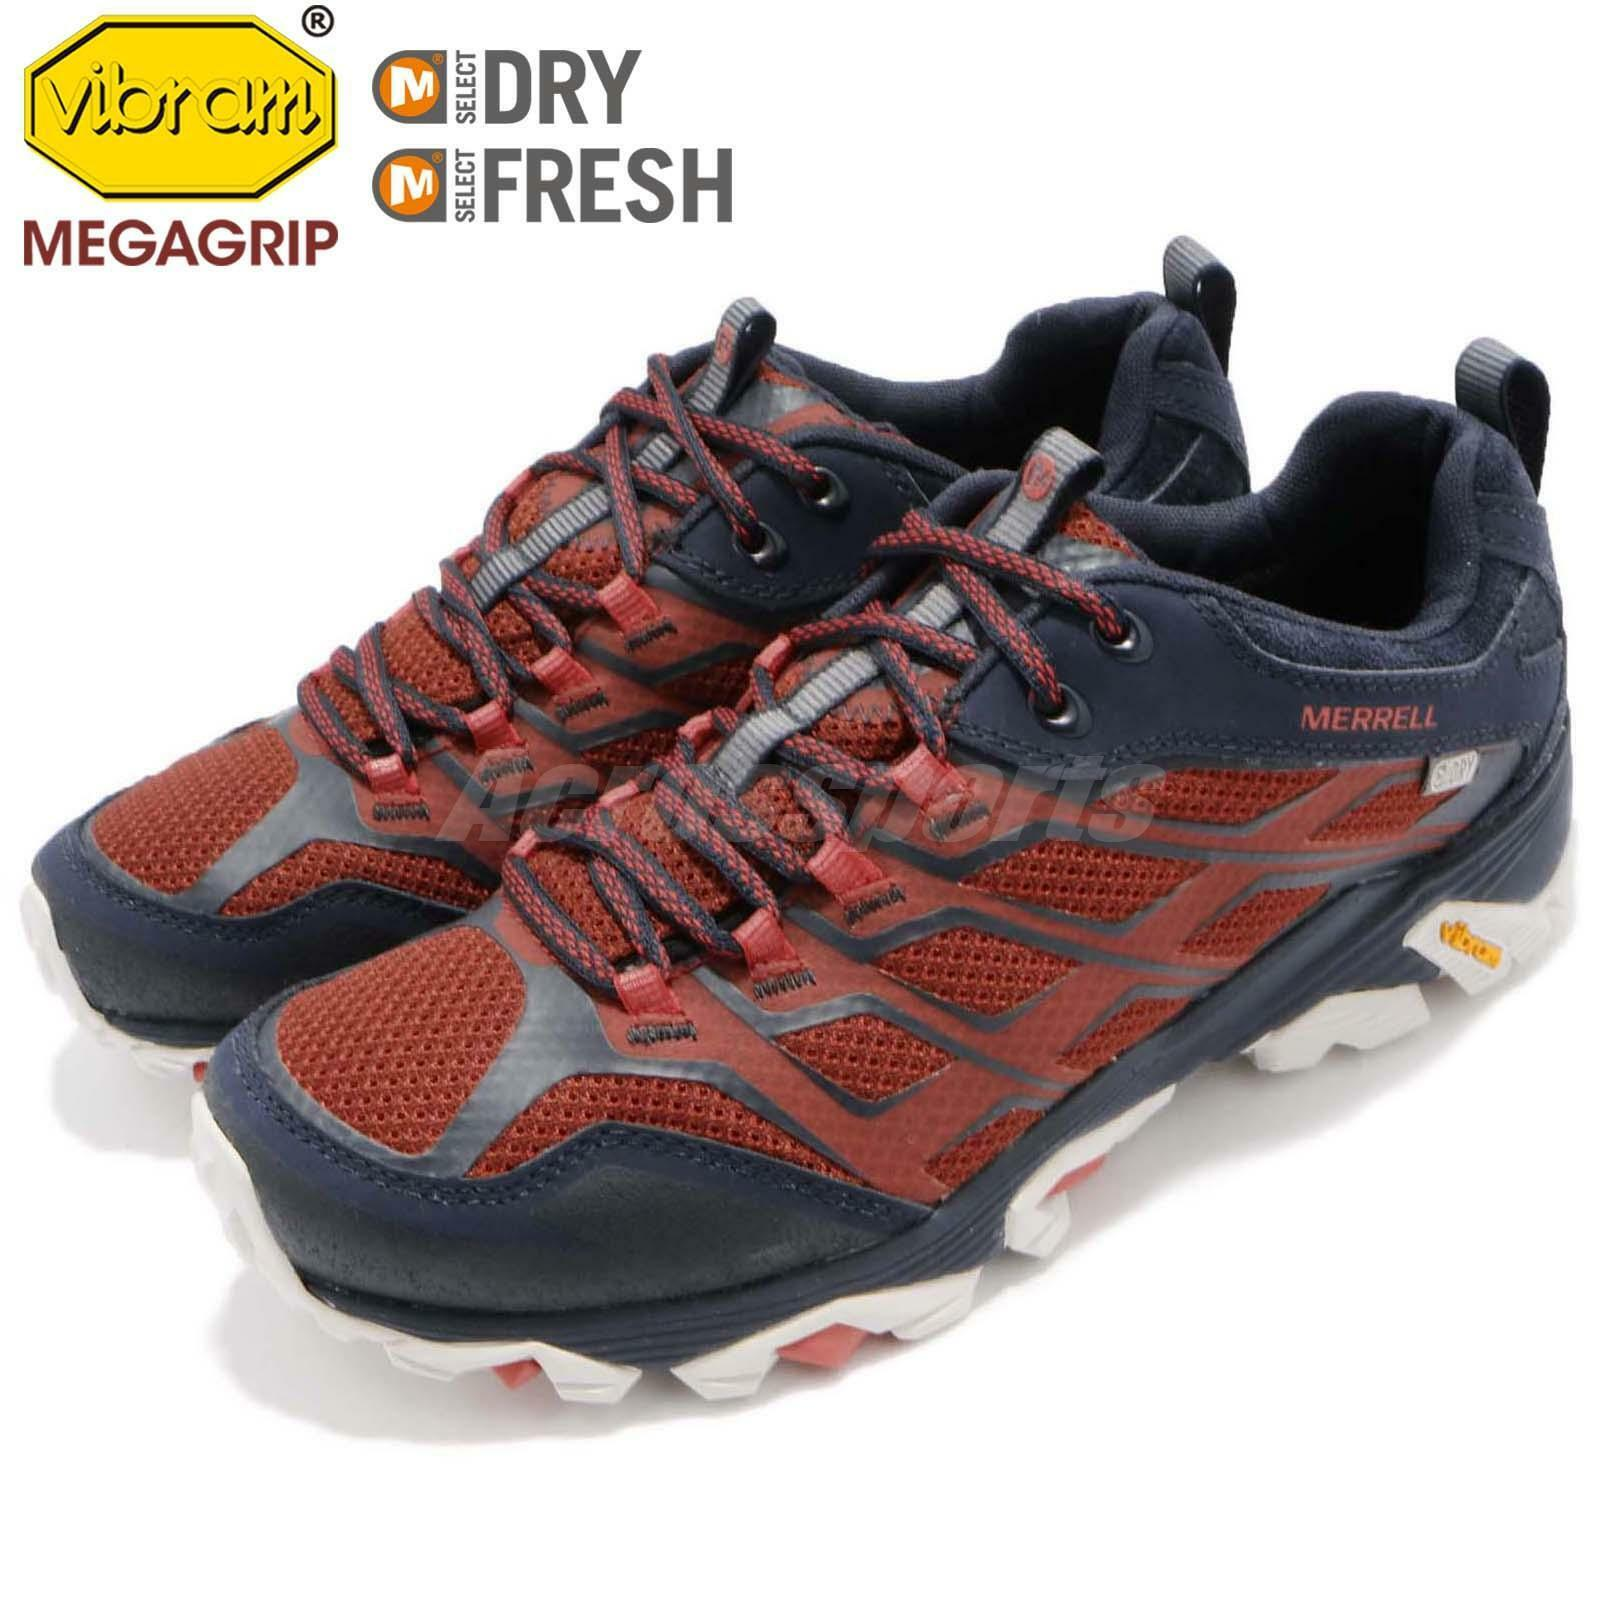 Merrell Moab FST Waterproof Navy Vibram Navy Waterproof Dark Red Uomo Outdoors Scarpe J37761 4490eb